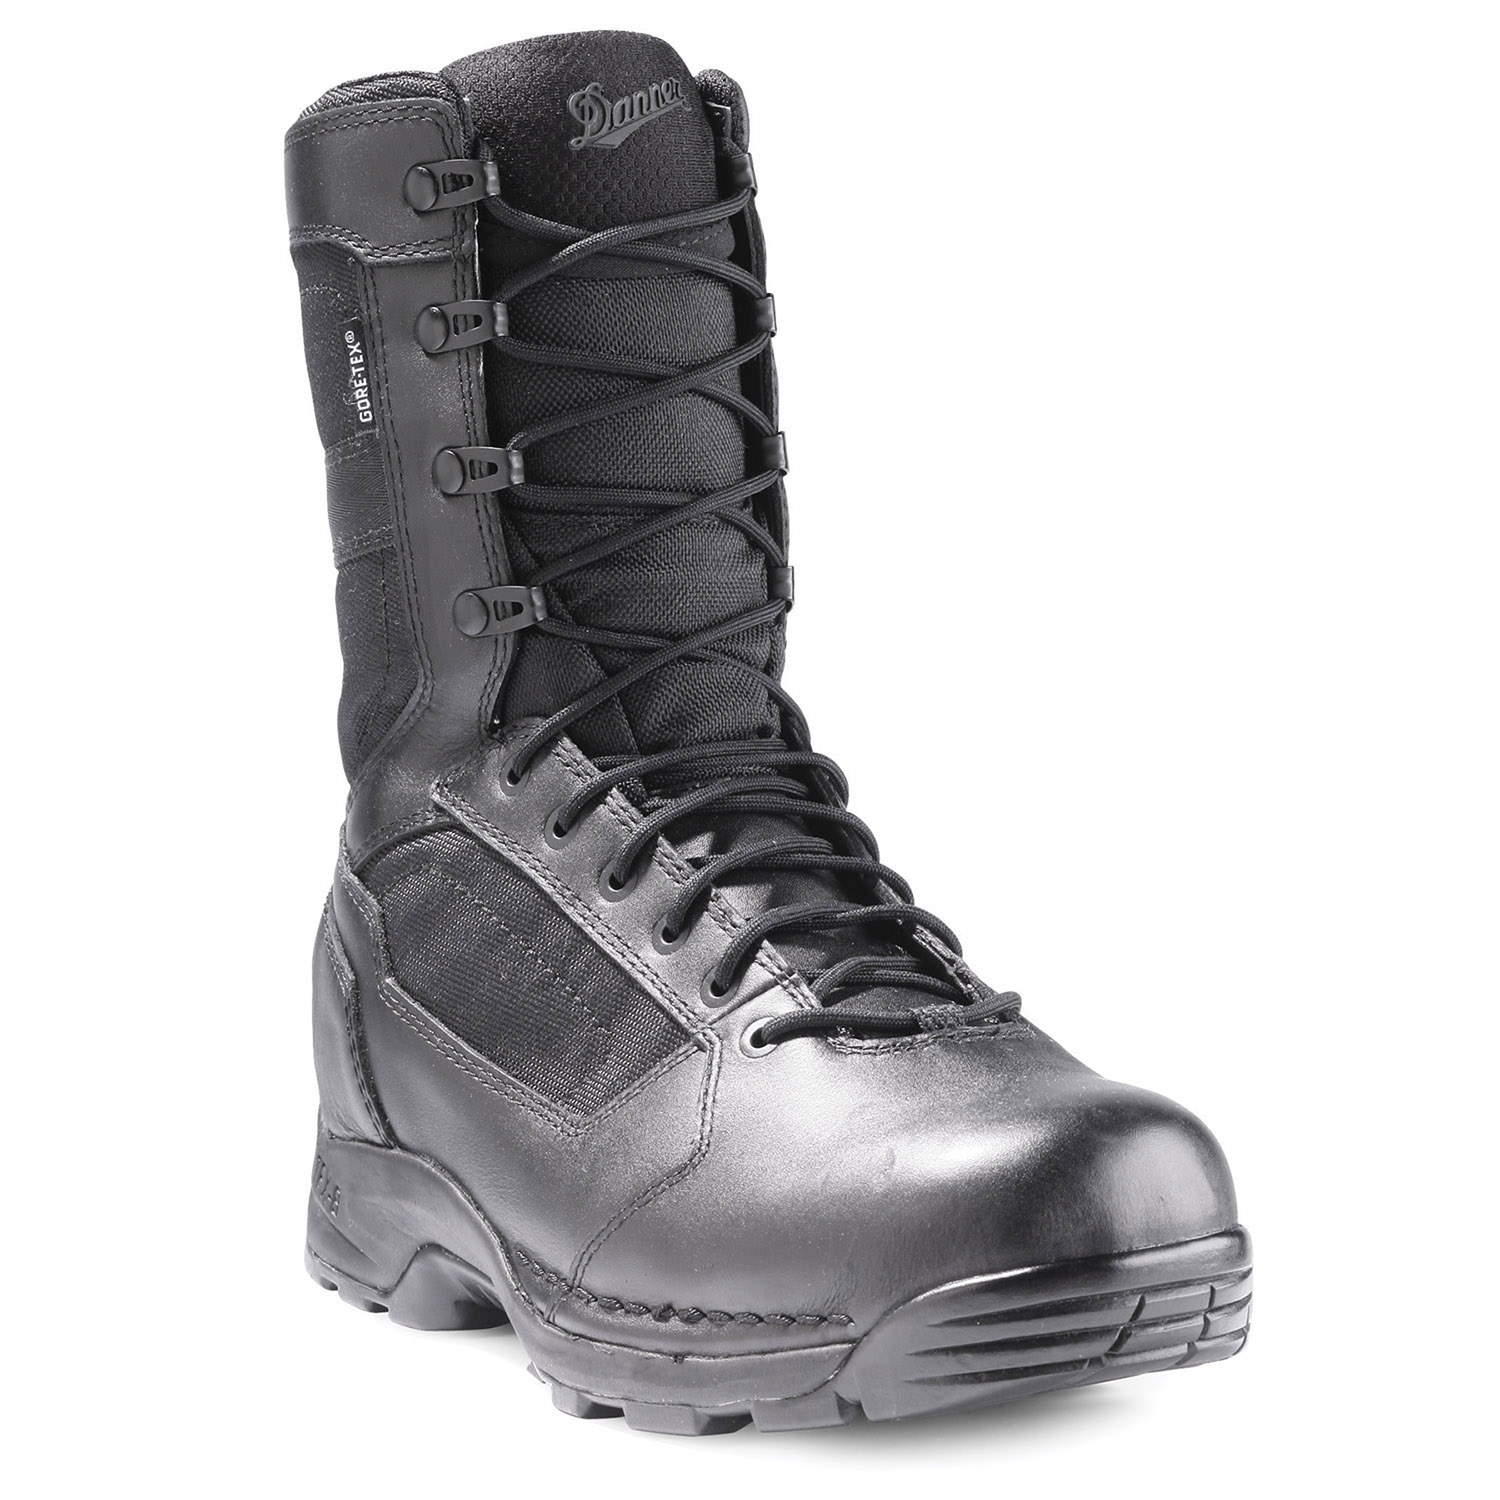 "Danner Striker Torrent 8"" Waterproof Side Zip Boot"